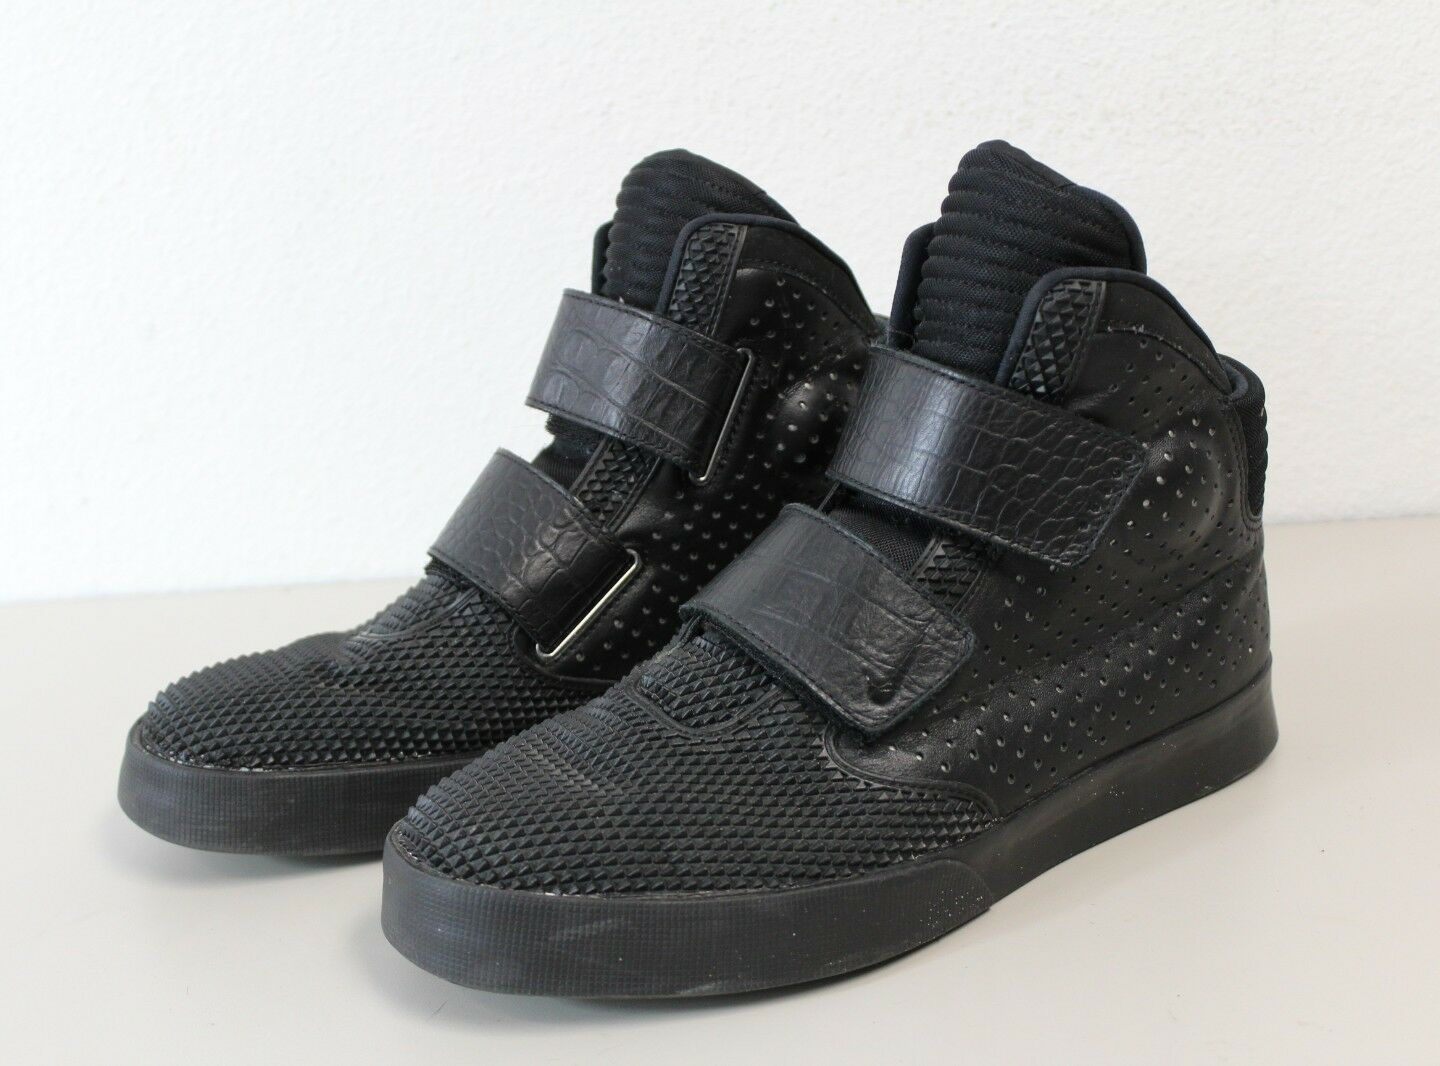 NIKE FLYSTEPPER 2K3 Basketball Shoes BLACK Comfortable Comfortable and good-looking